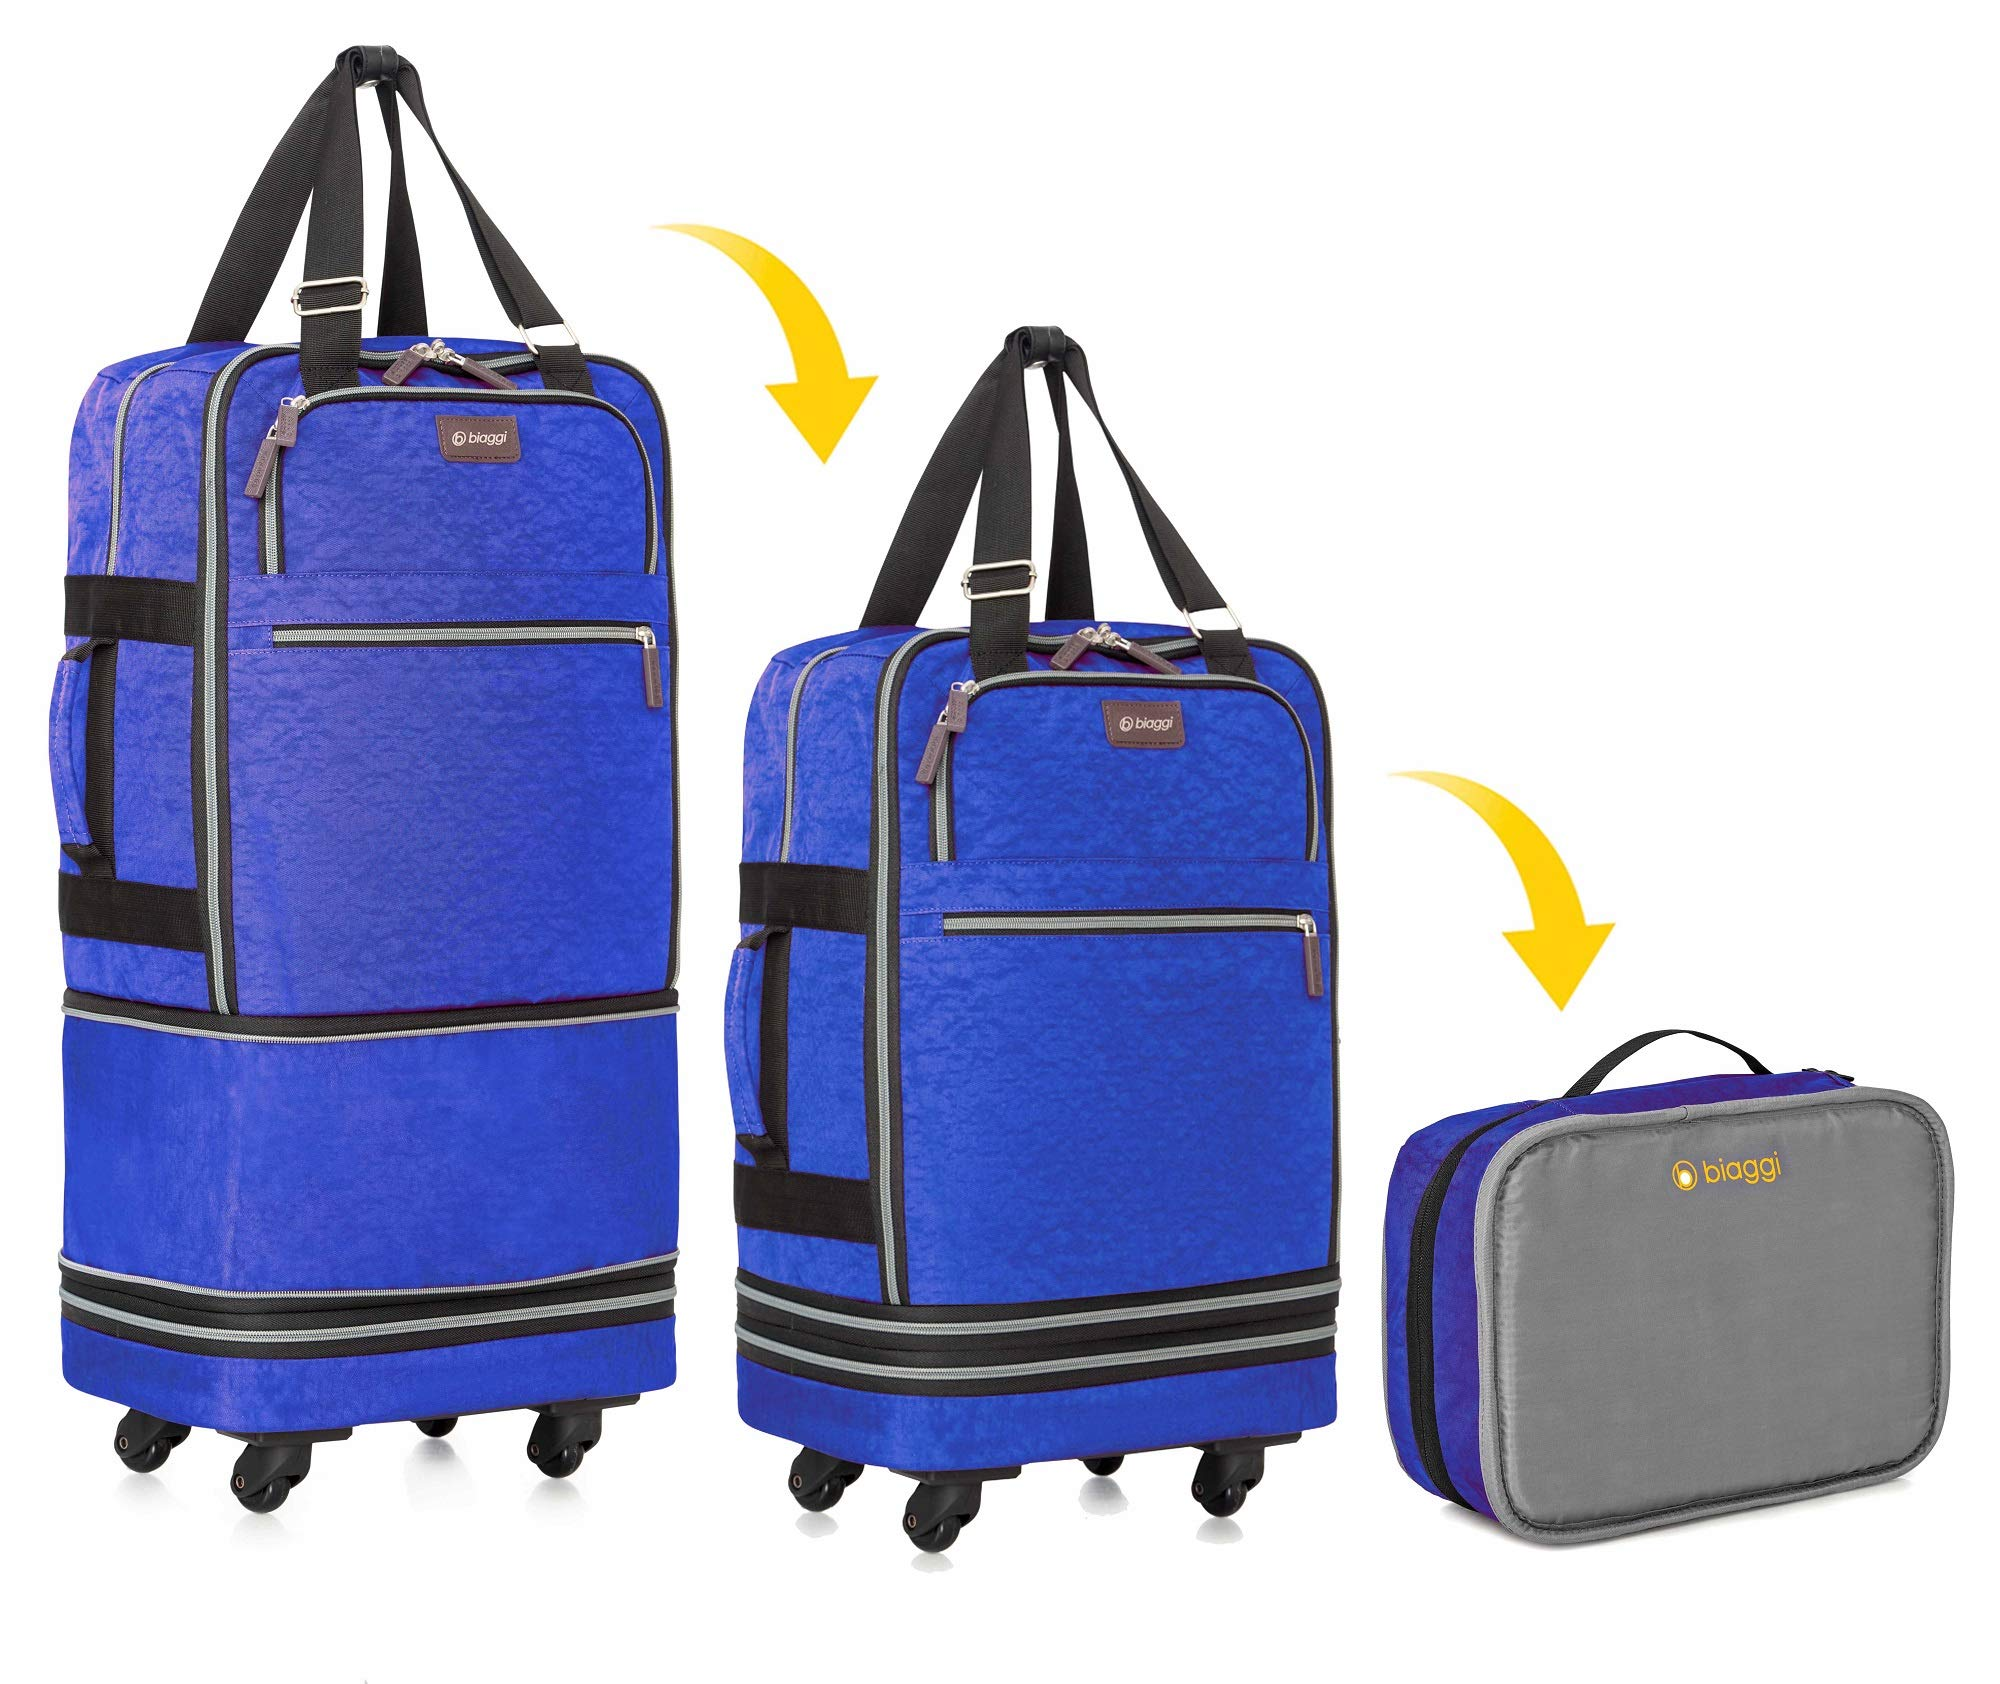 Biaggi Zipsak Boost Carry-On Suitcase - Compact Luggage Expands 22-Inches to 28-Inches - As Seen on Shark Tank - Cobalt Blue